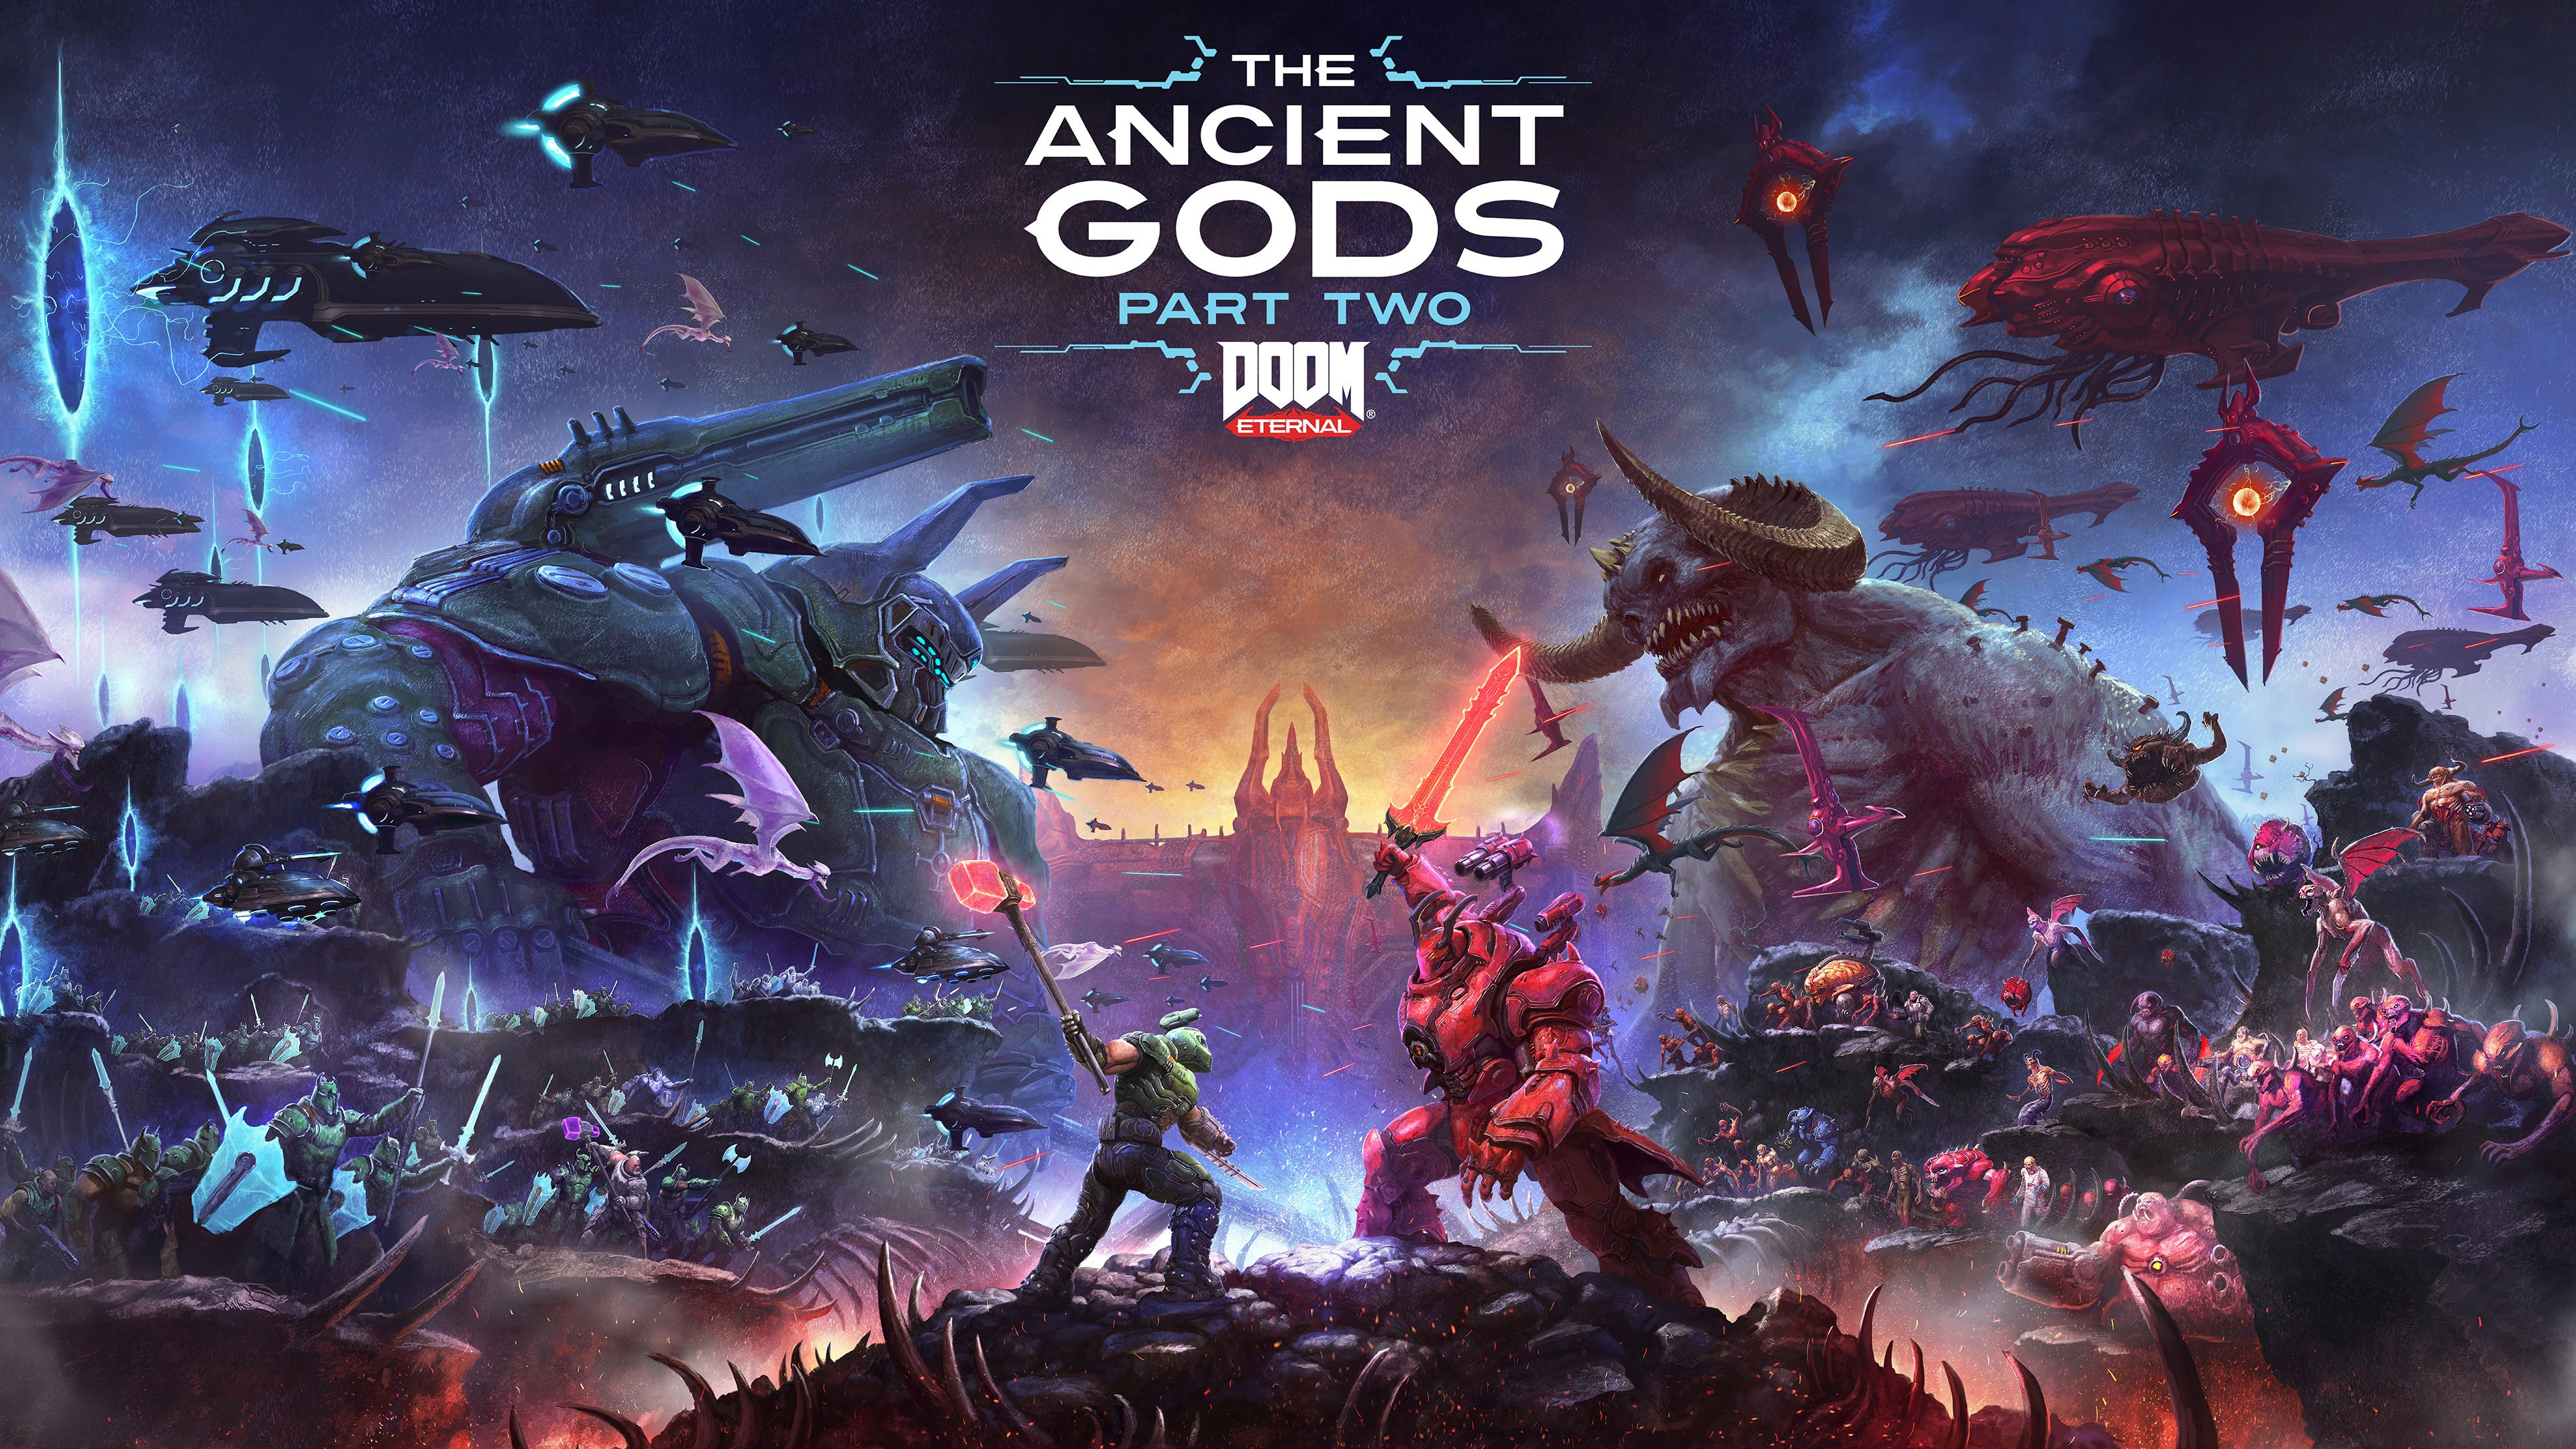 This is wallpaper-worthy key art for Doom Eternal: The Ancient Gods - Part Two.